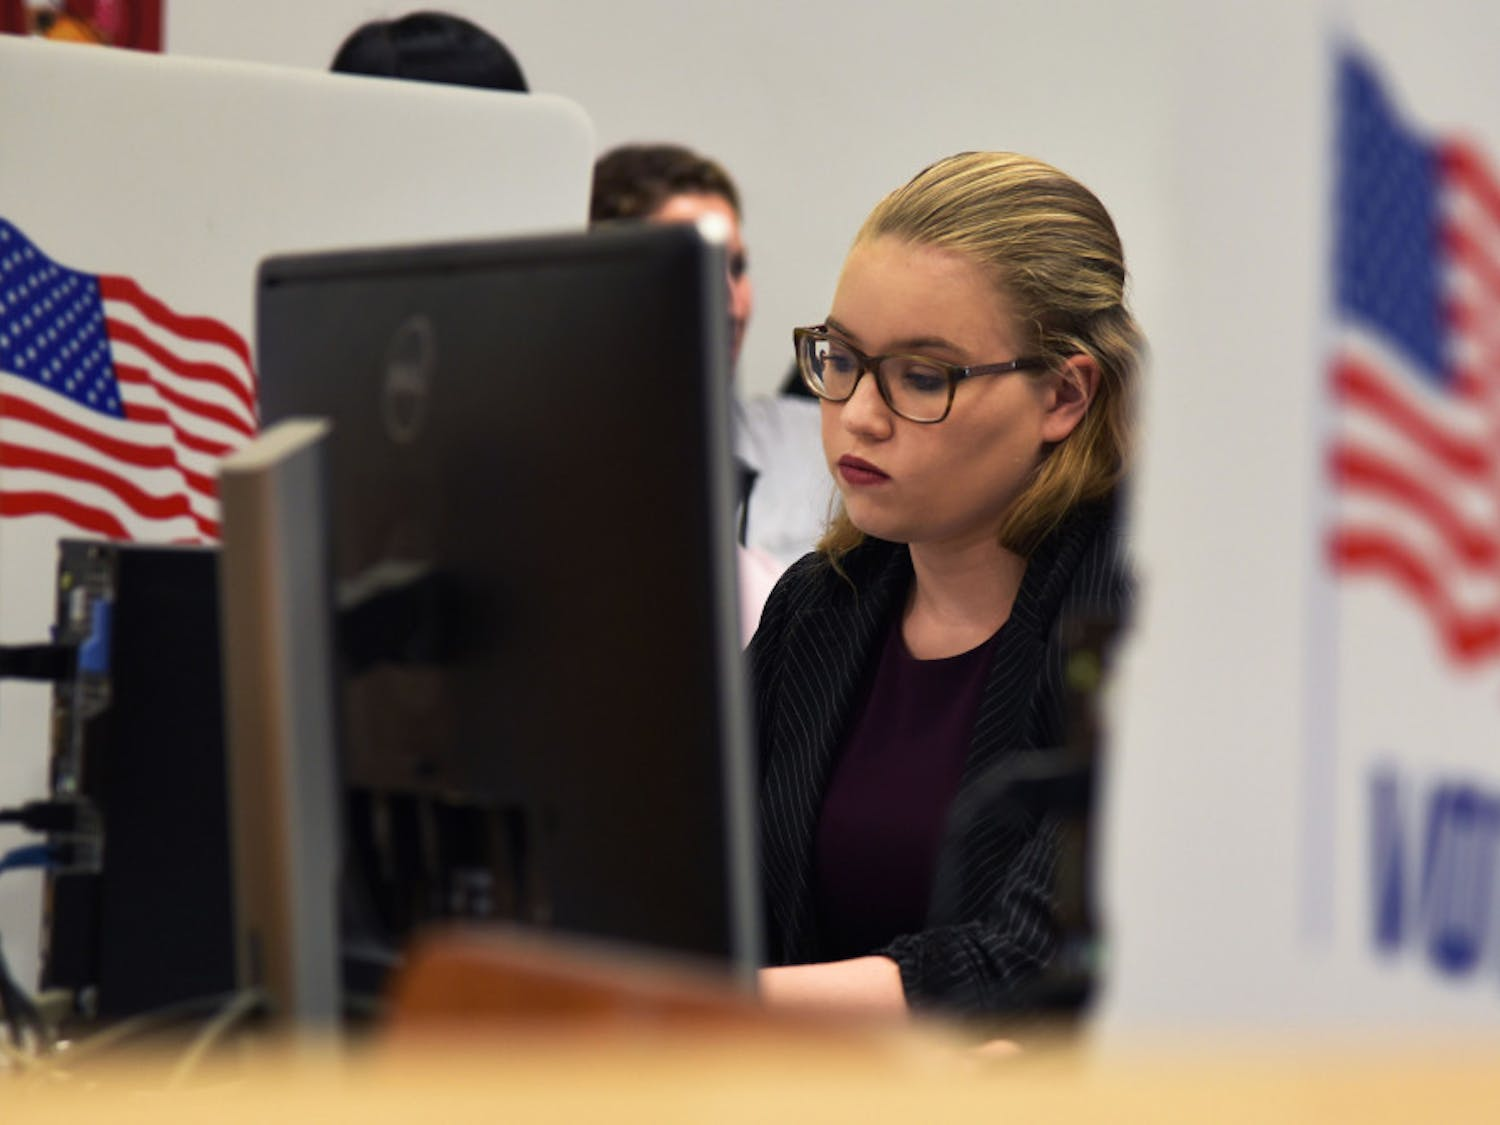 Olivia Dunbar, a 20-year-old computer engineering junior at UF, votes Tuesday in the fall student government election at the Marston Library.